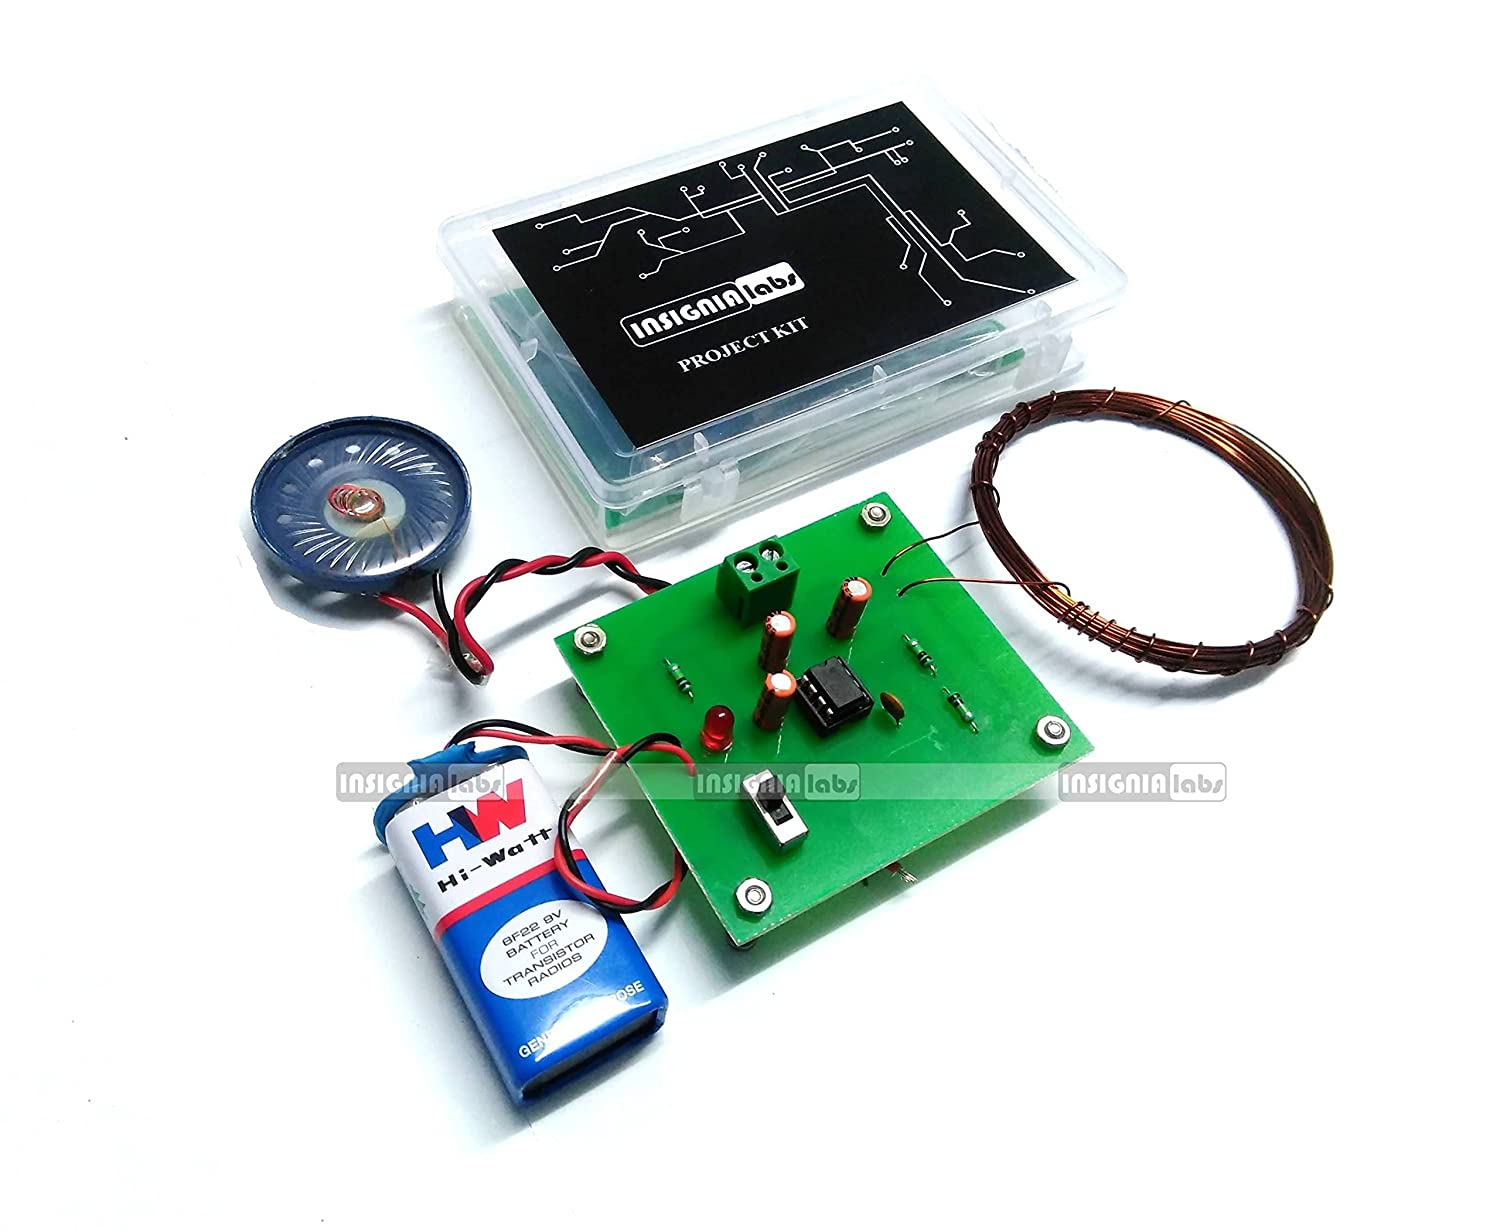 Buy Insignia Labs Metal Detector Kit Project Online At Low Prices Circuit Board Pen In India